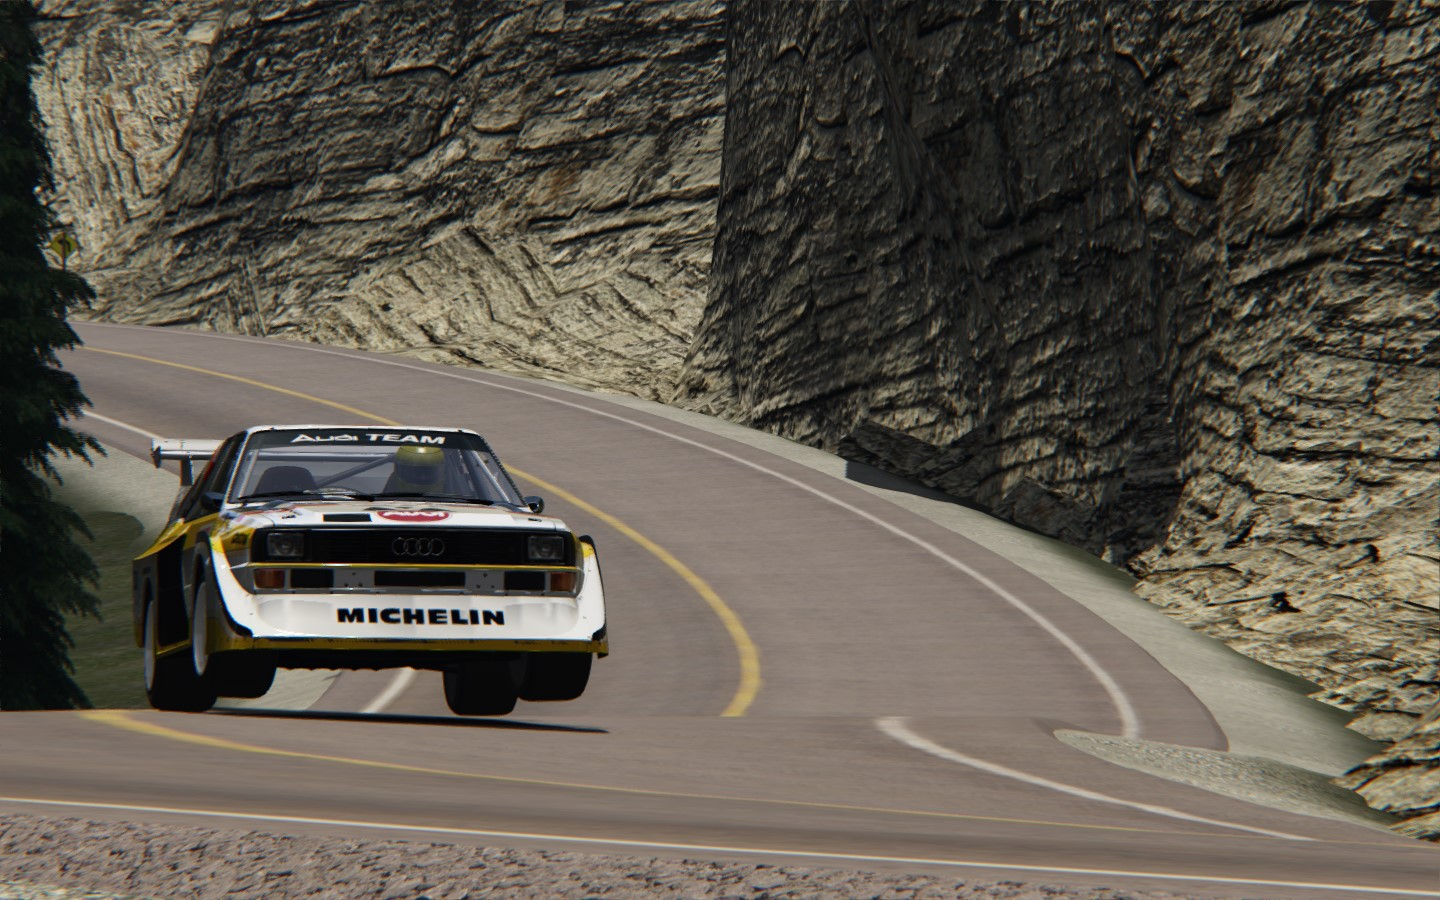 Screenshot_ks_audi_sport_quattro_rally_lakelouise_208_12-10-117-18-5-24.jpg